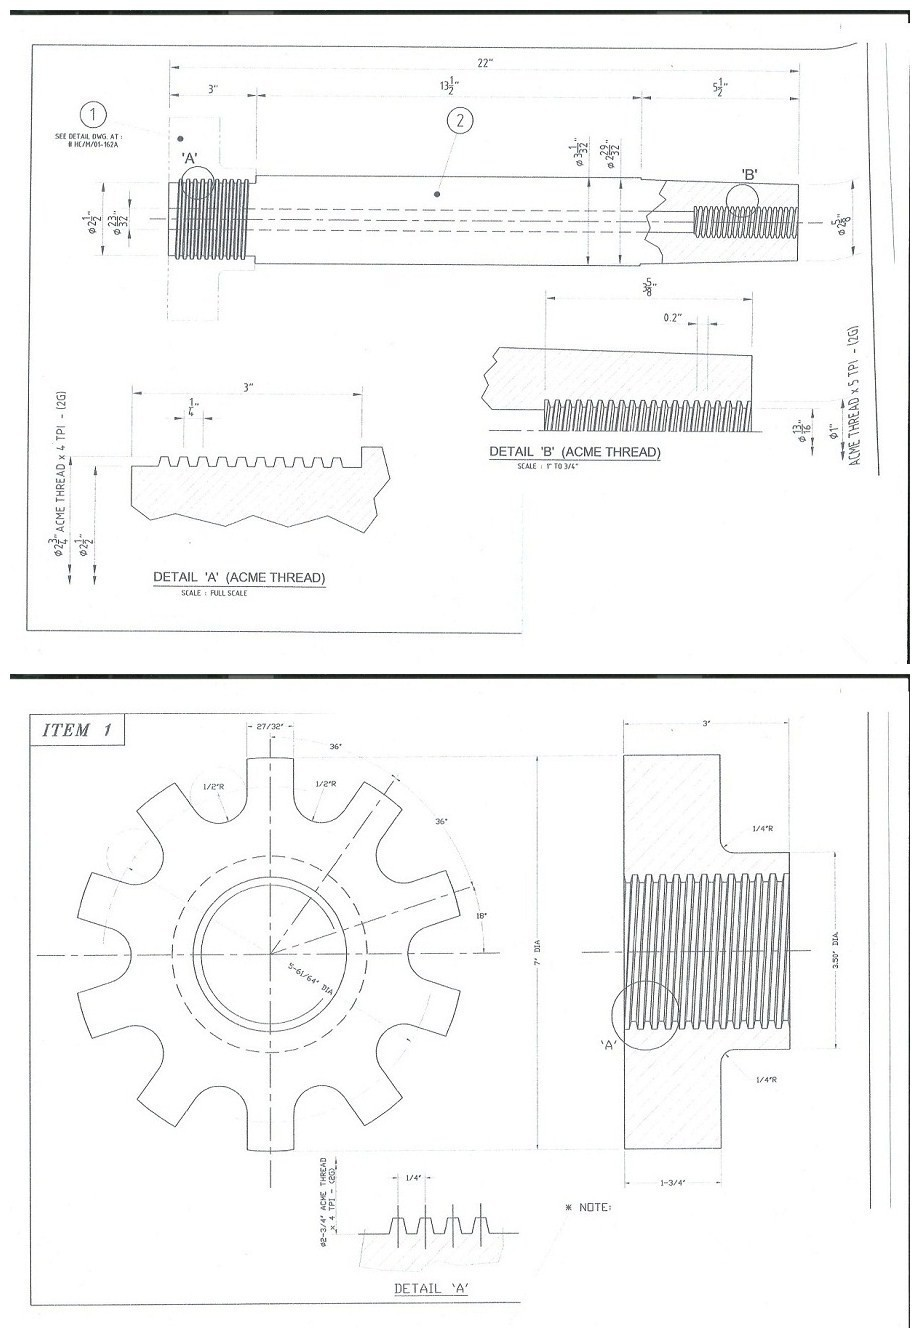 hi-tech Graphite rotor for aluminum dehydrogenation and purification 27